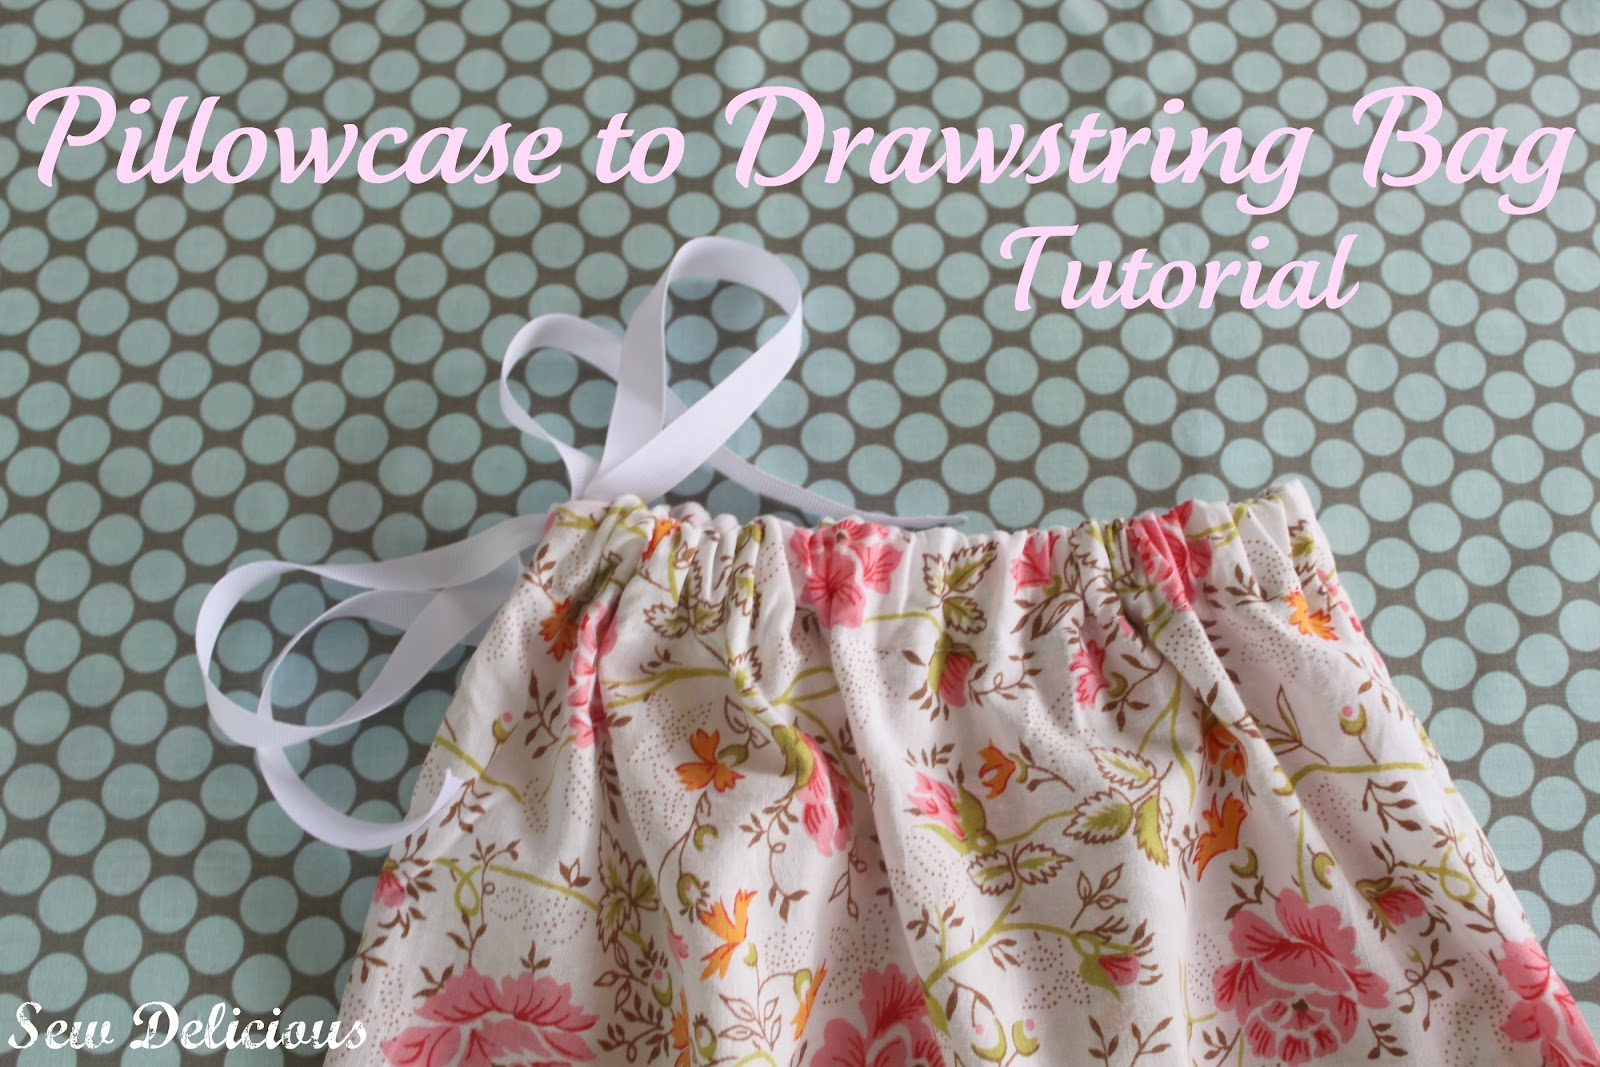 Pillowcase to Drawstring Bag - Tutorial - Sew Delicious